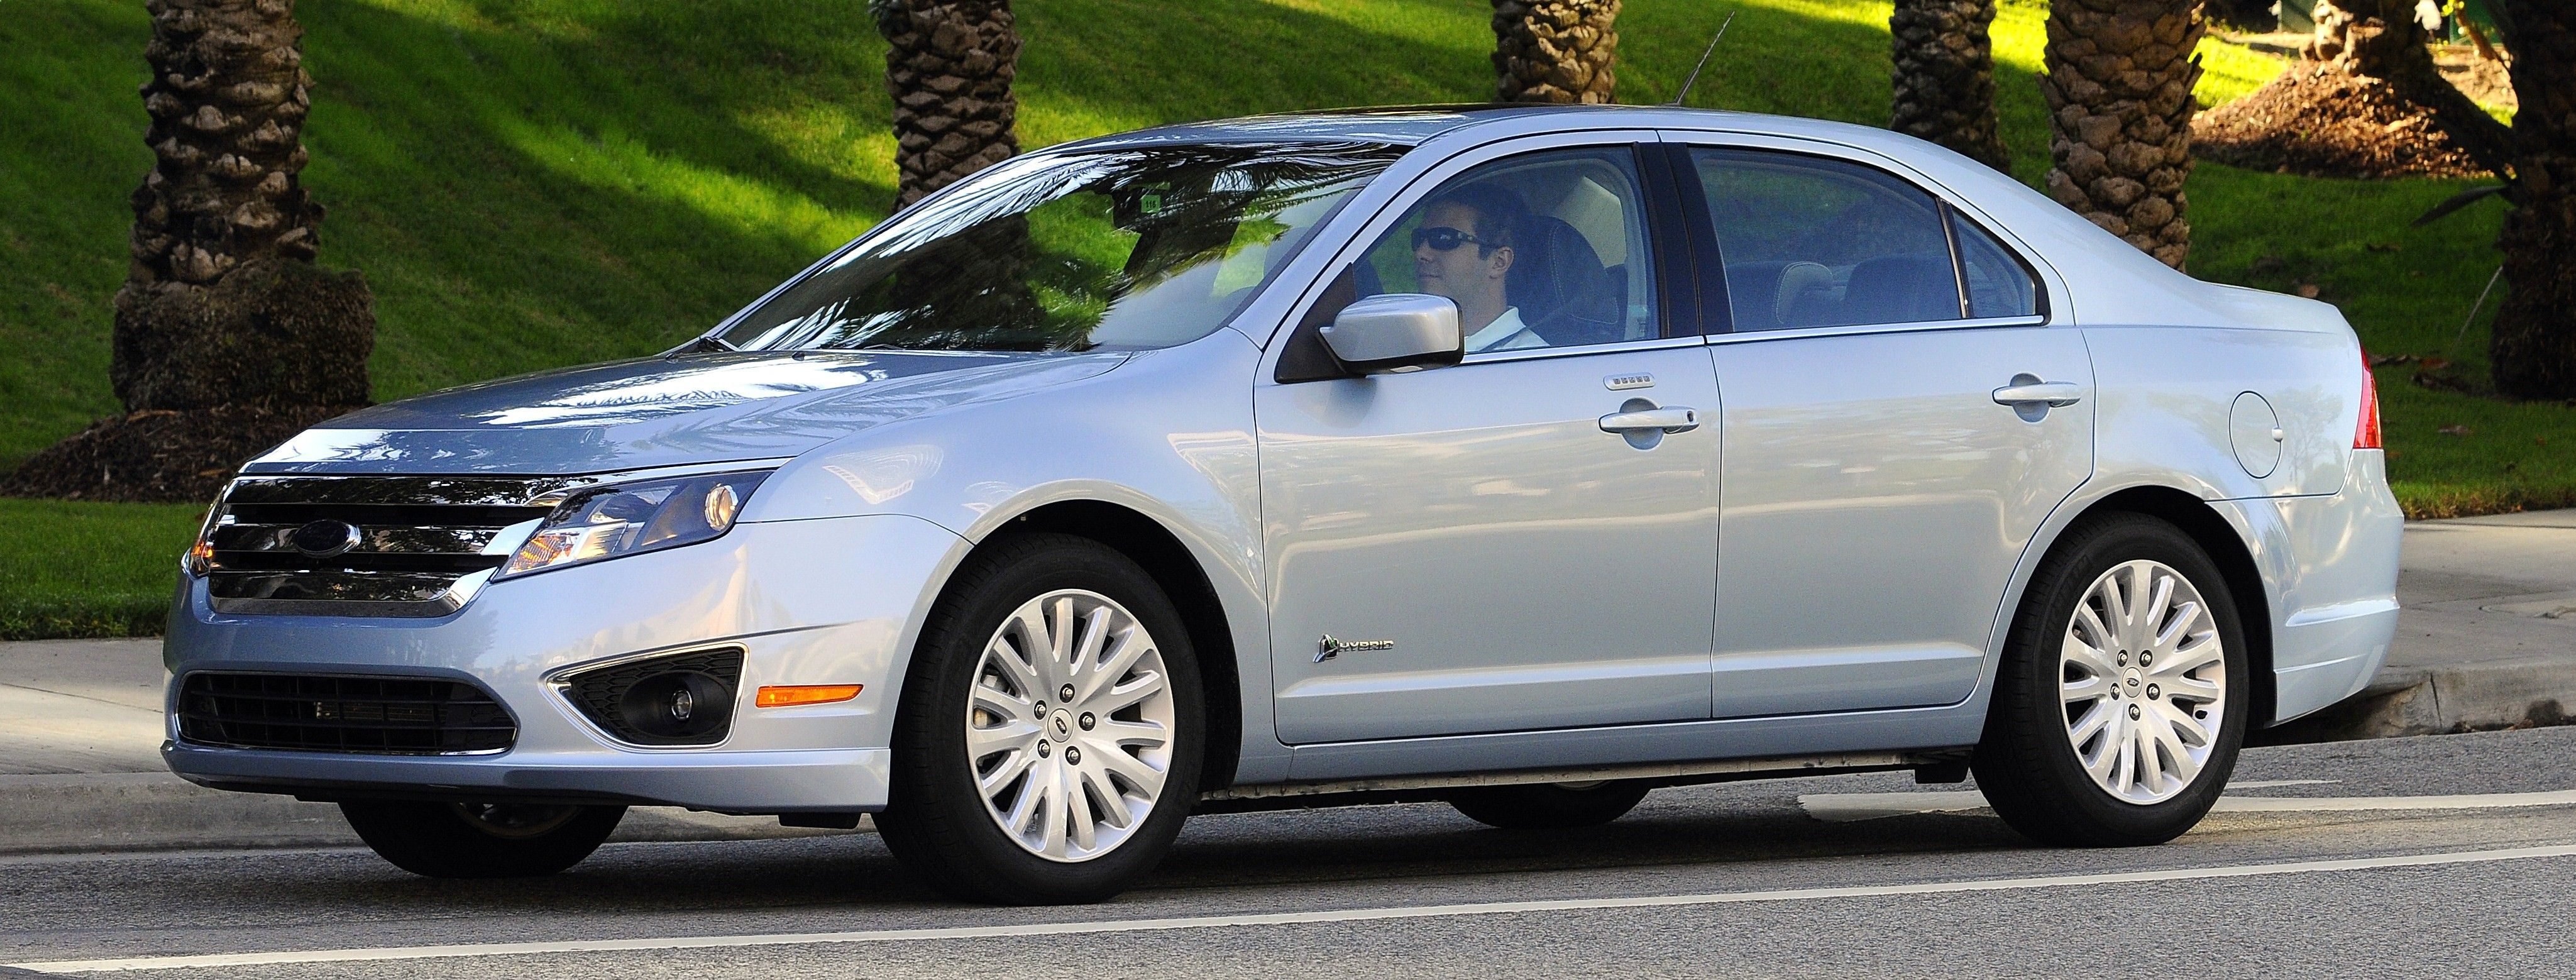 2010 ford fusion se ford fusion 2010 pinterest ford fusion and ford